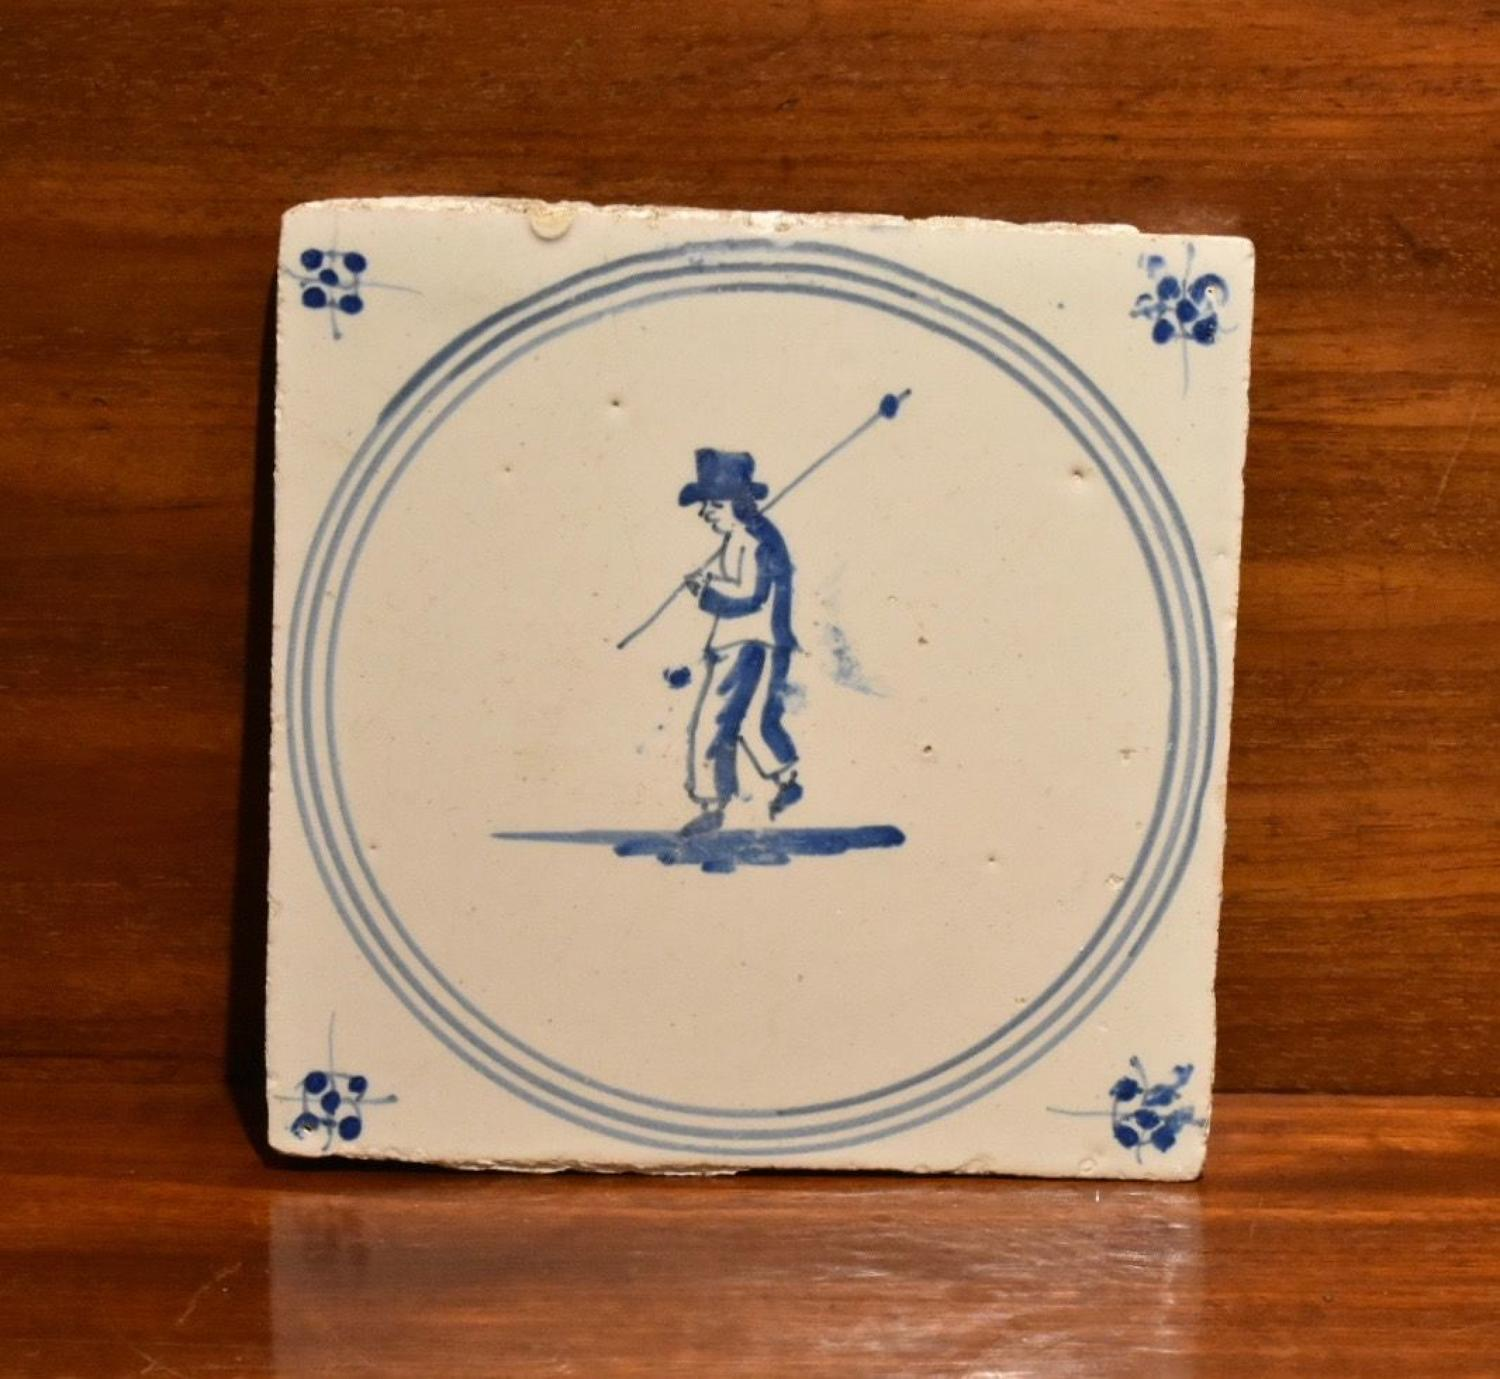 18th century Dutch Delft tile